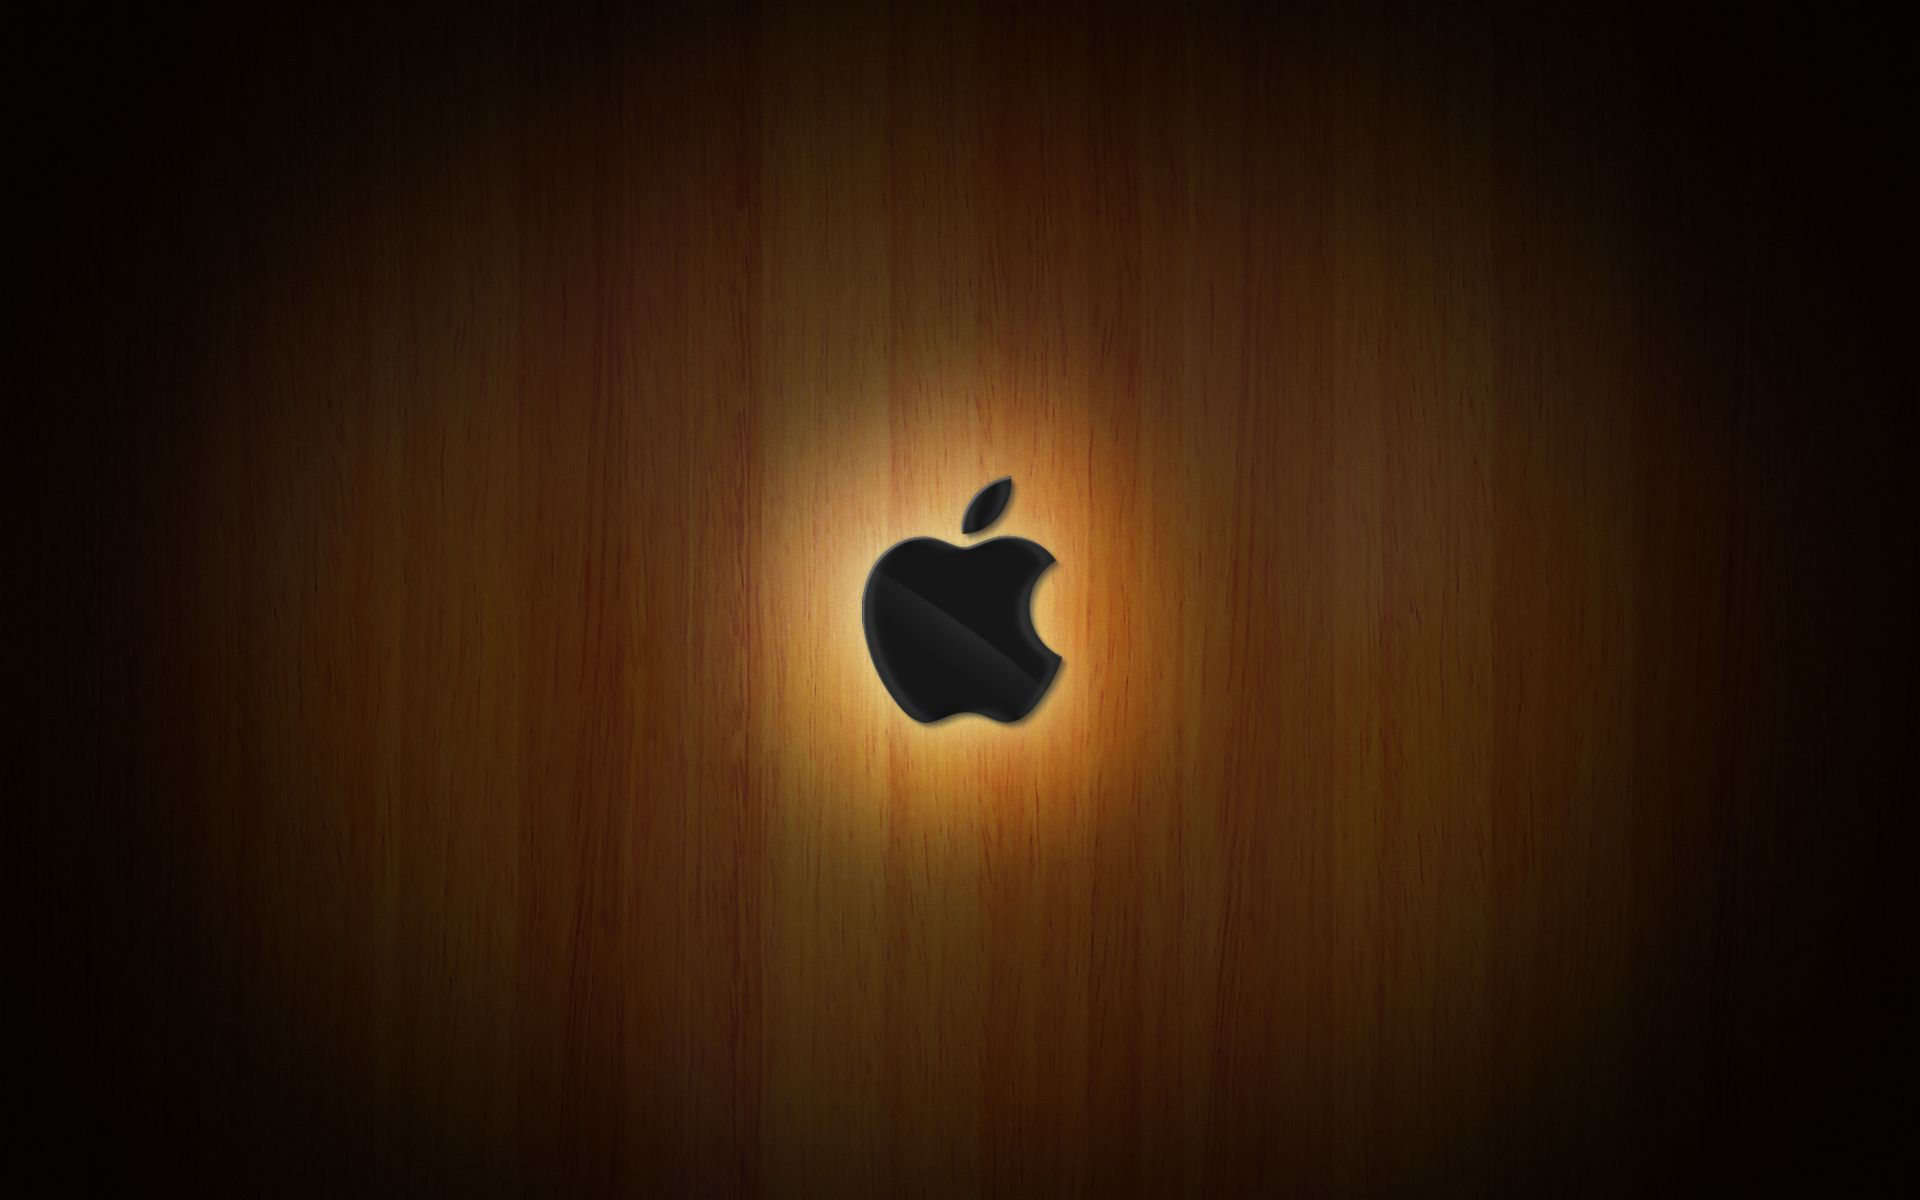 Gambar Wallpaper Hp Apple Gudang Wallpaper